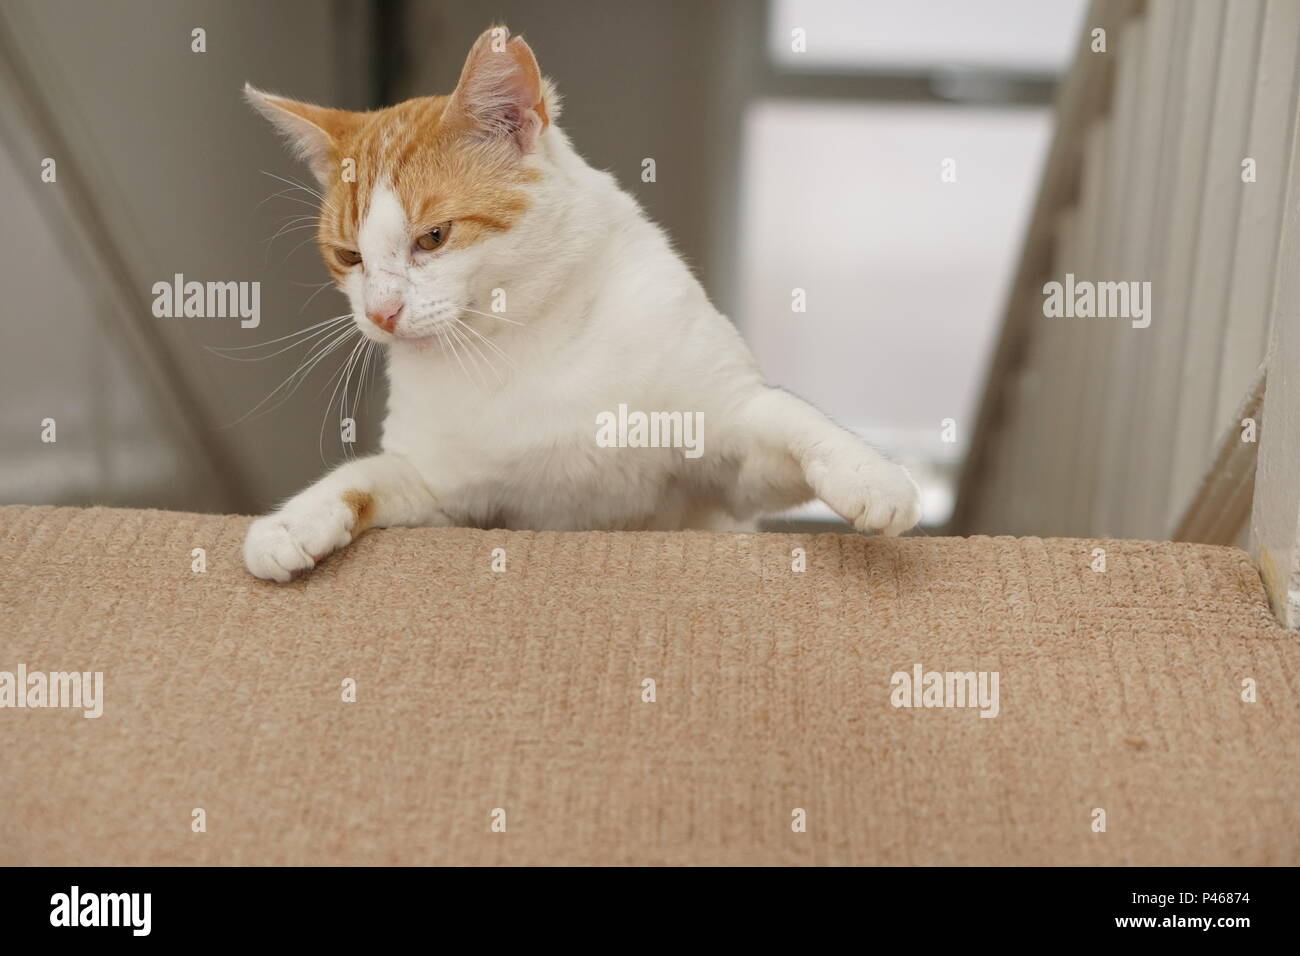 White And Ginger Cat On Staircase